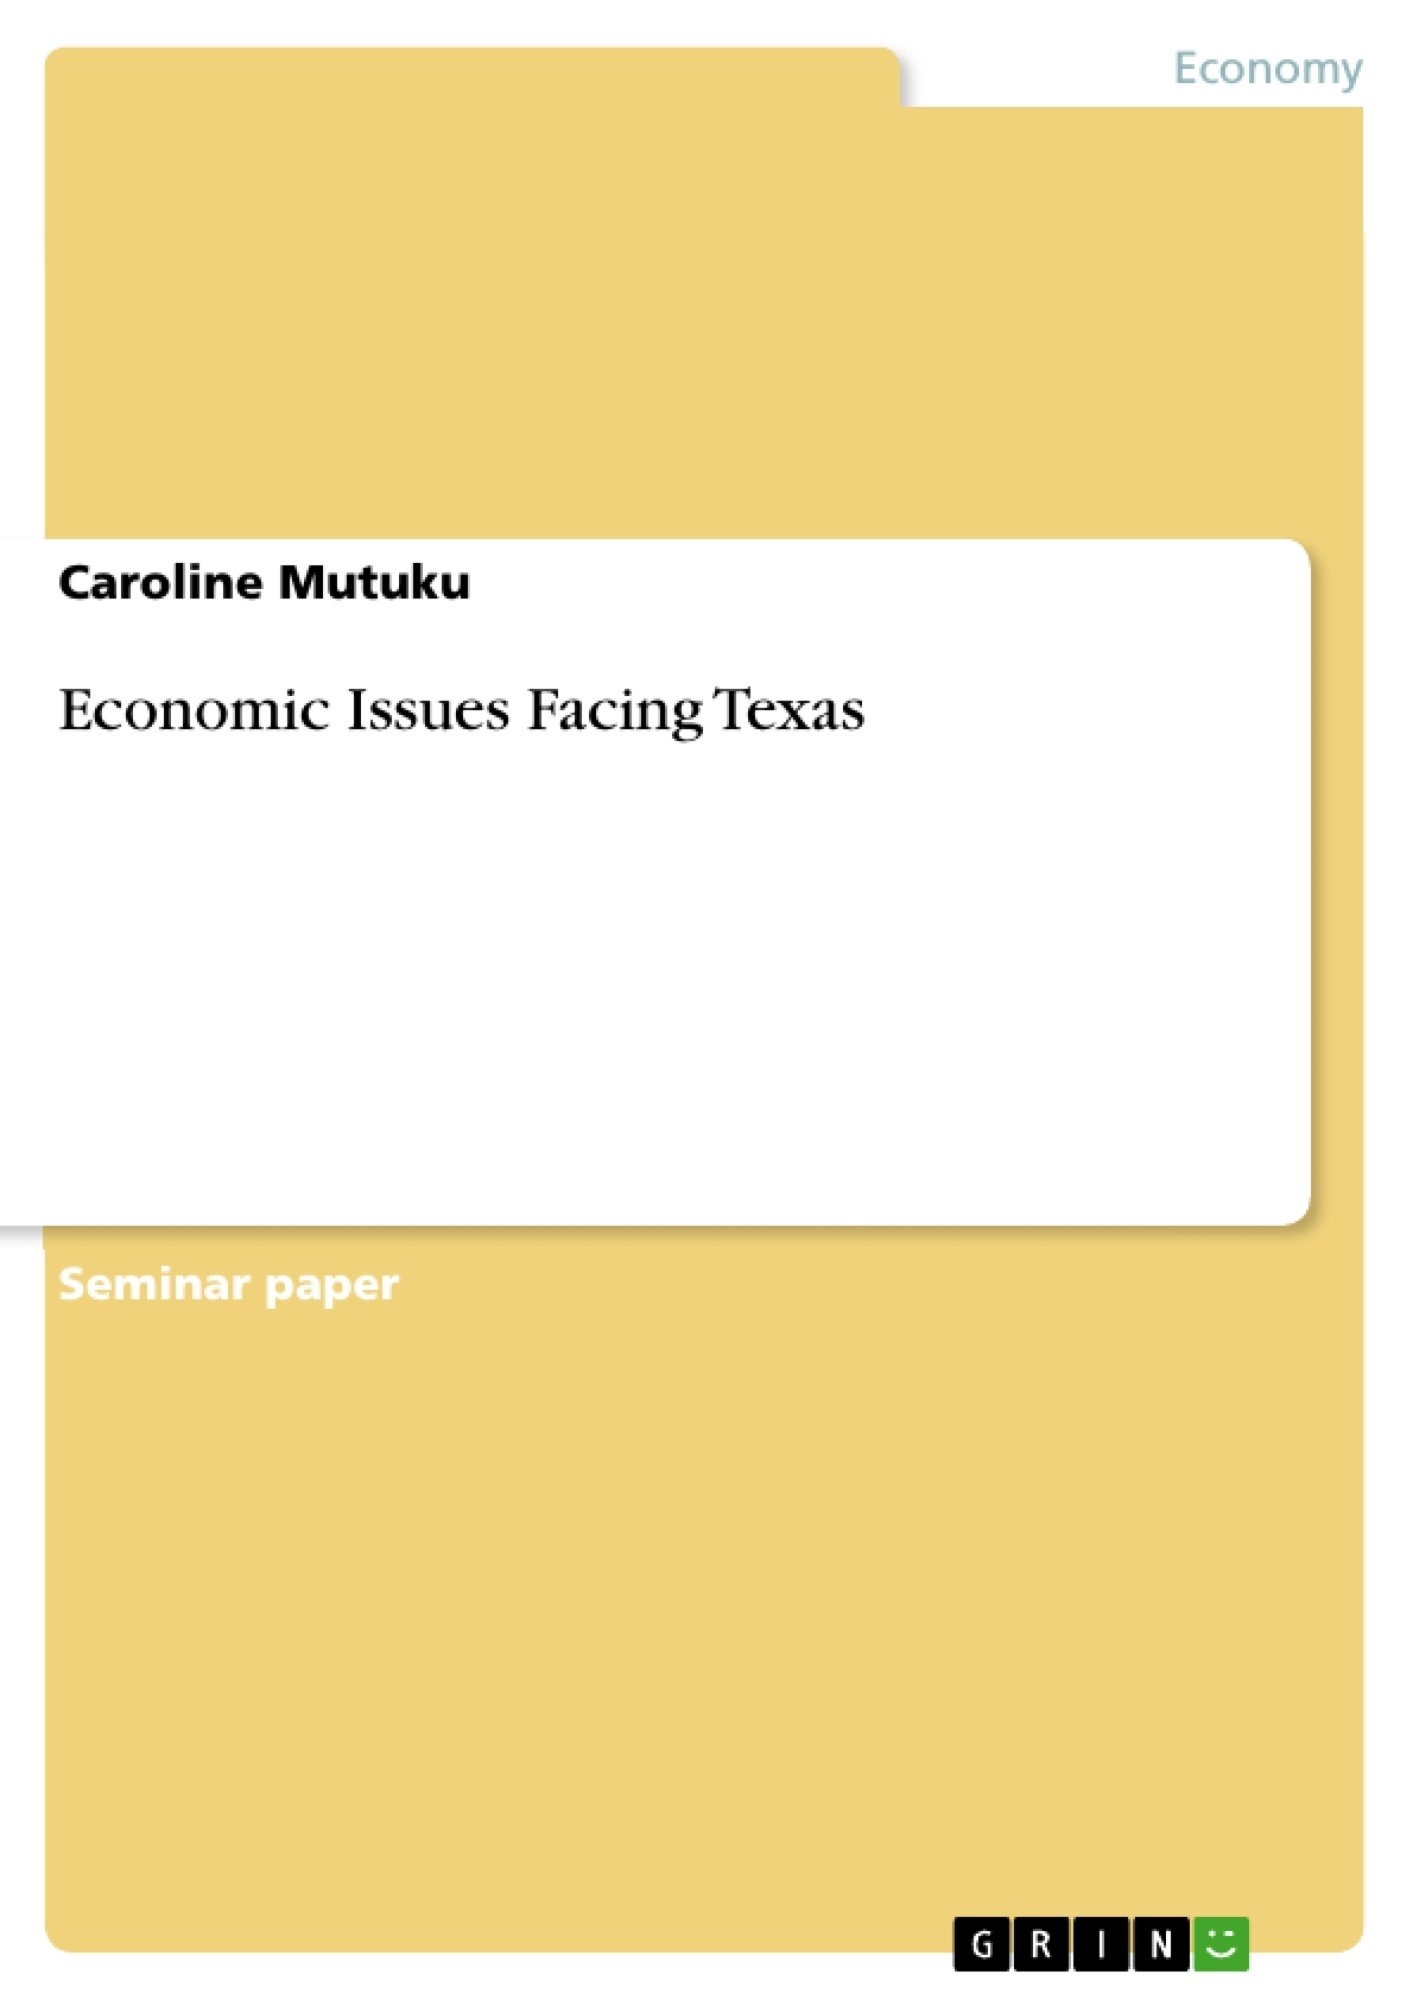 Title: Economic Issues Facing Texas